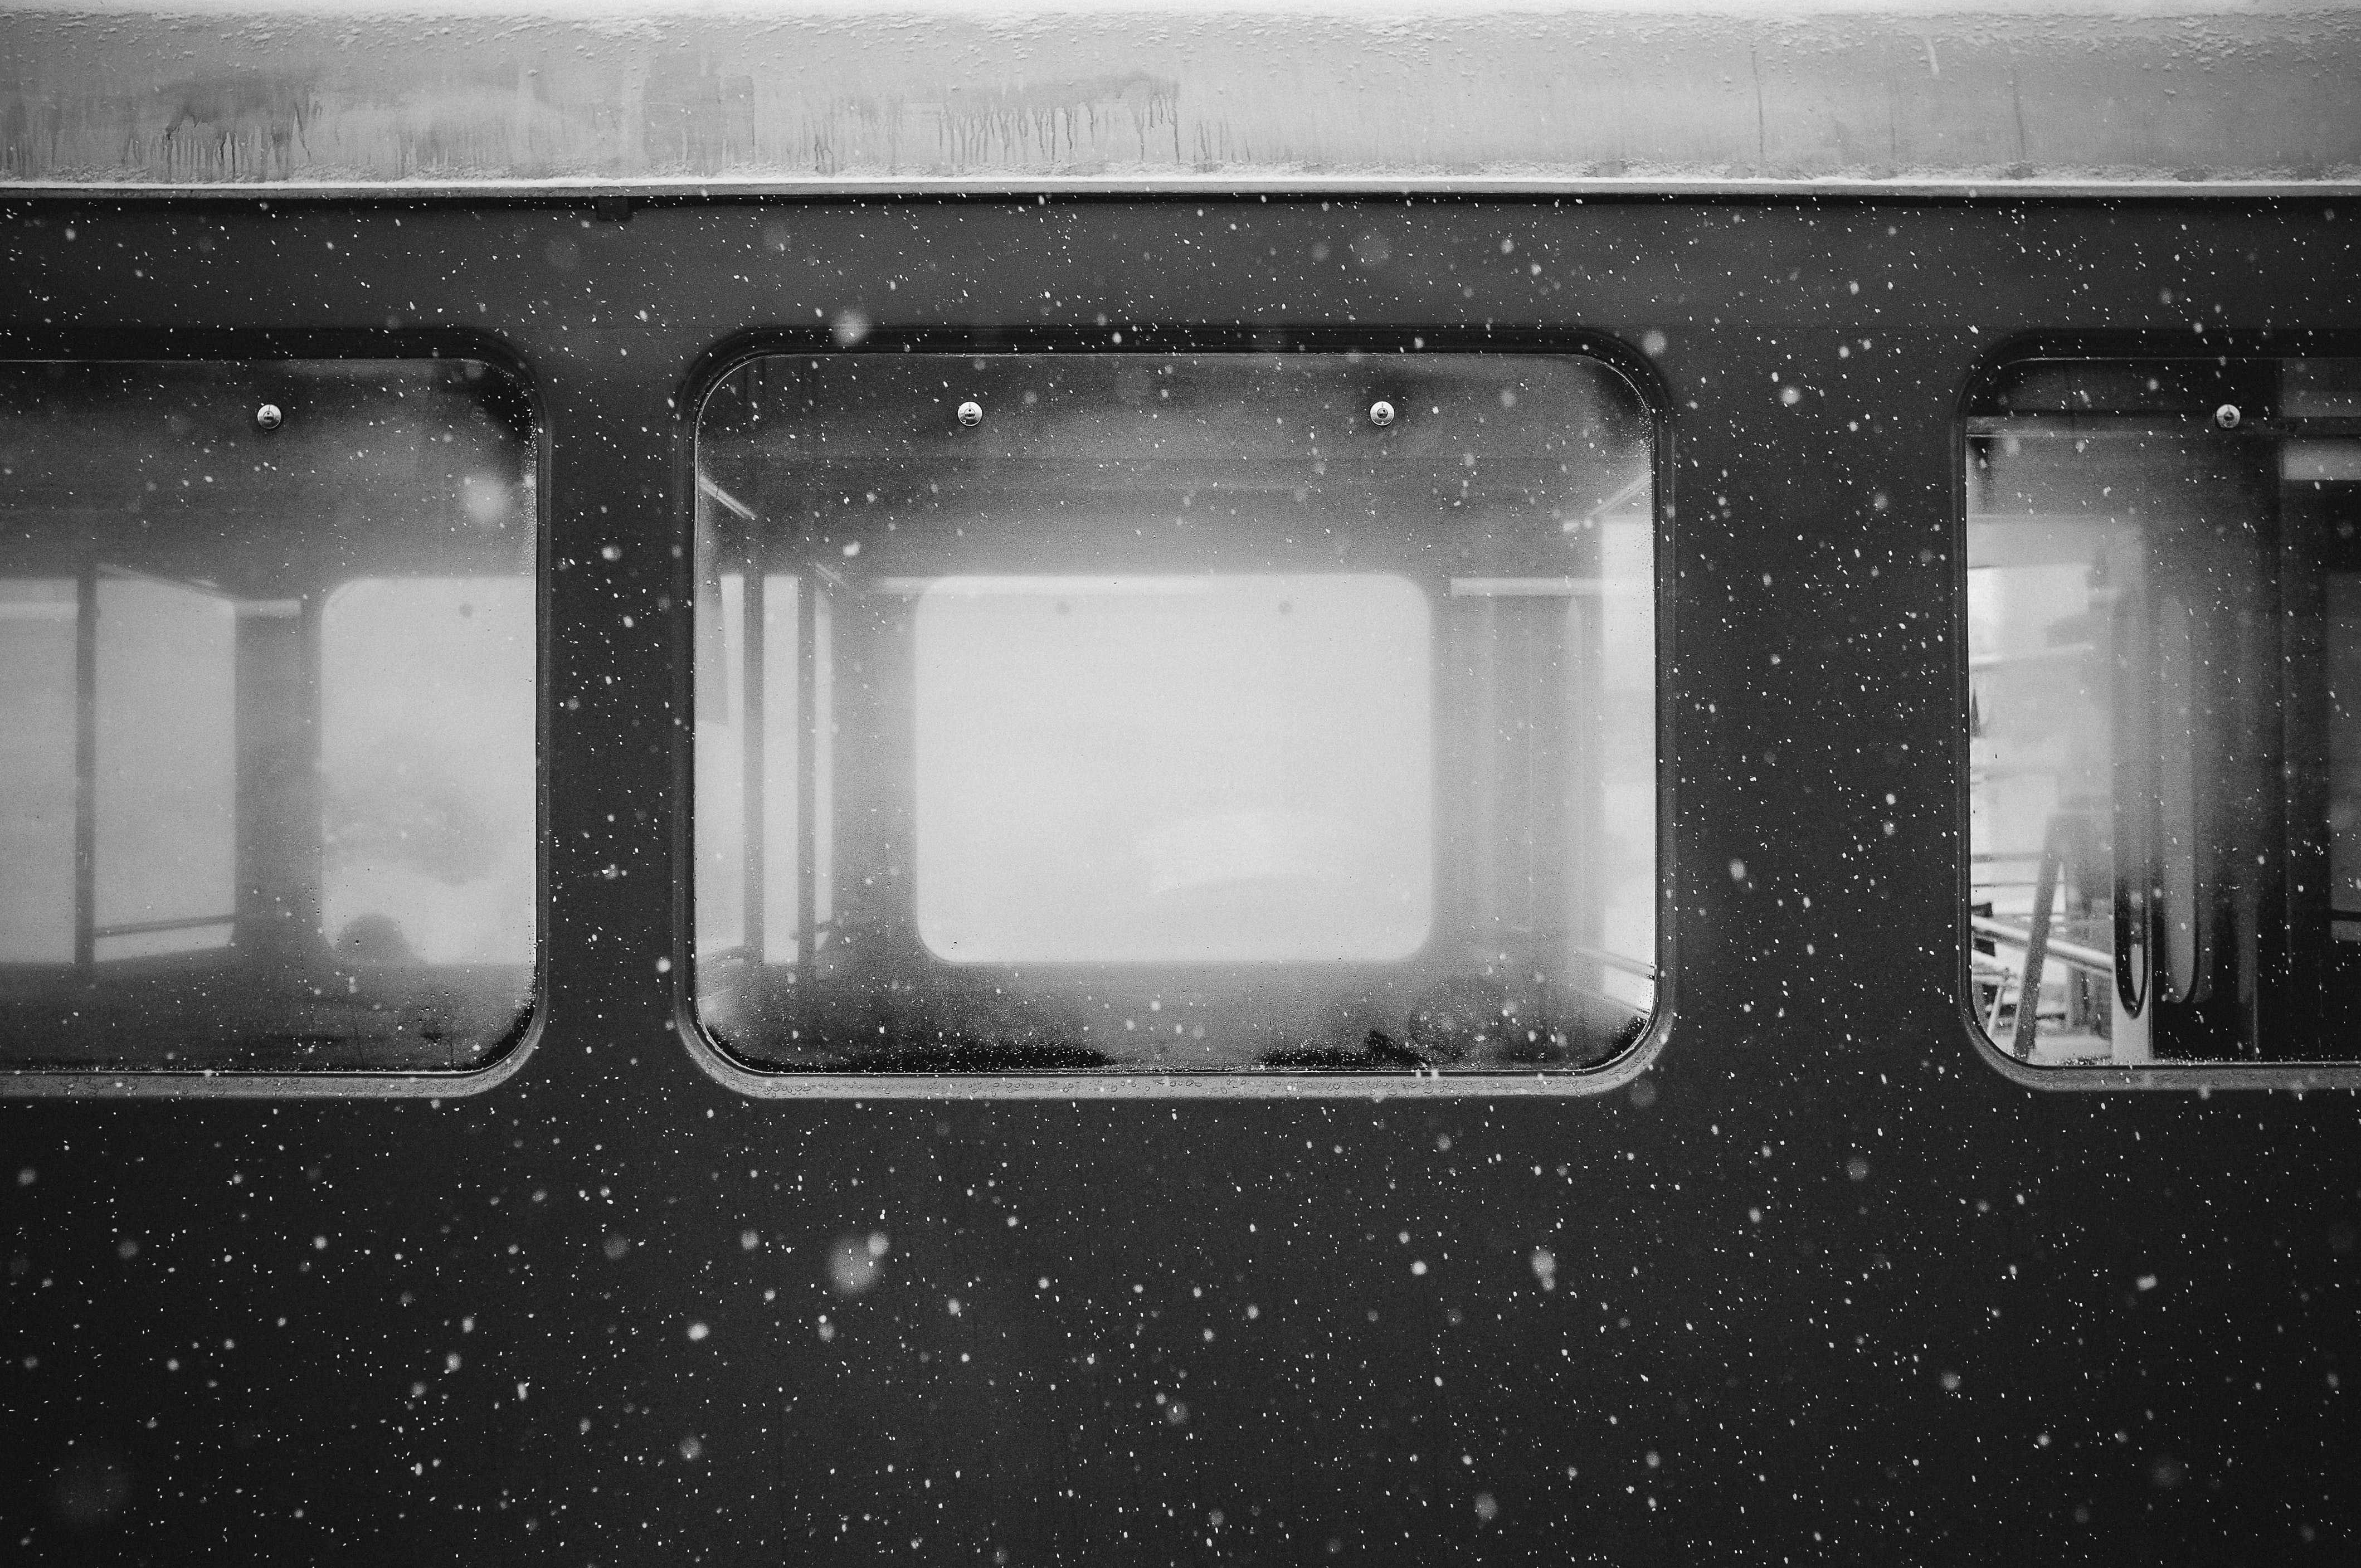 Black and white shot of train carriage window with falling snow